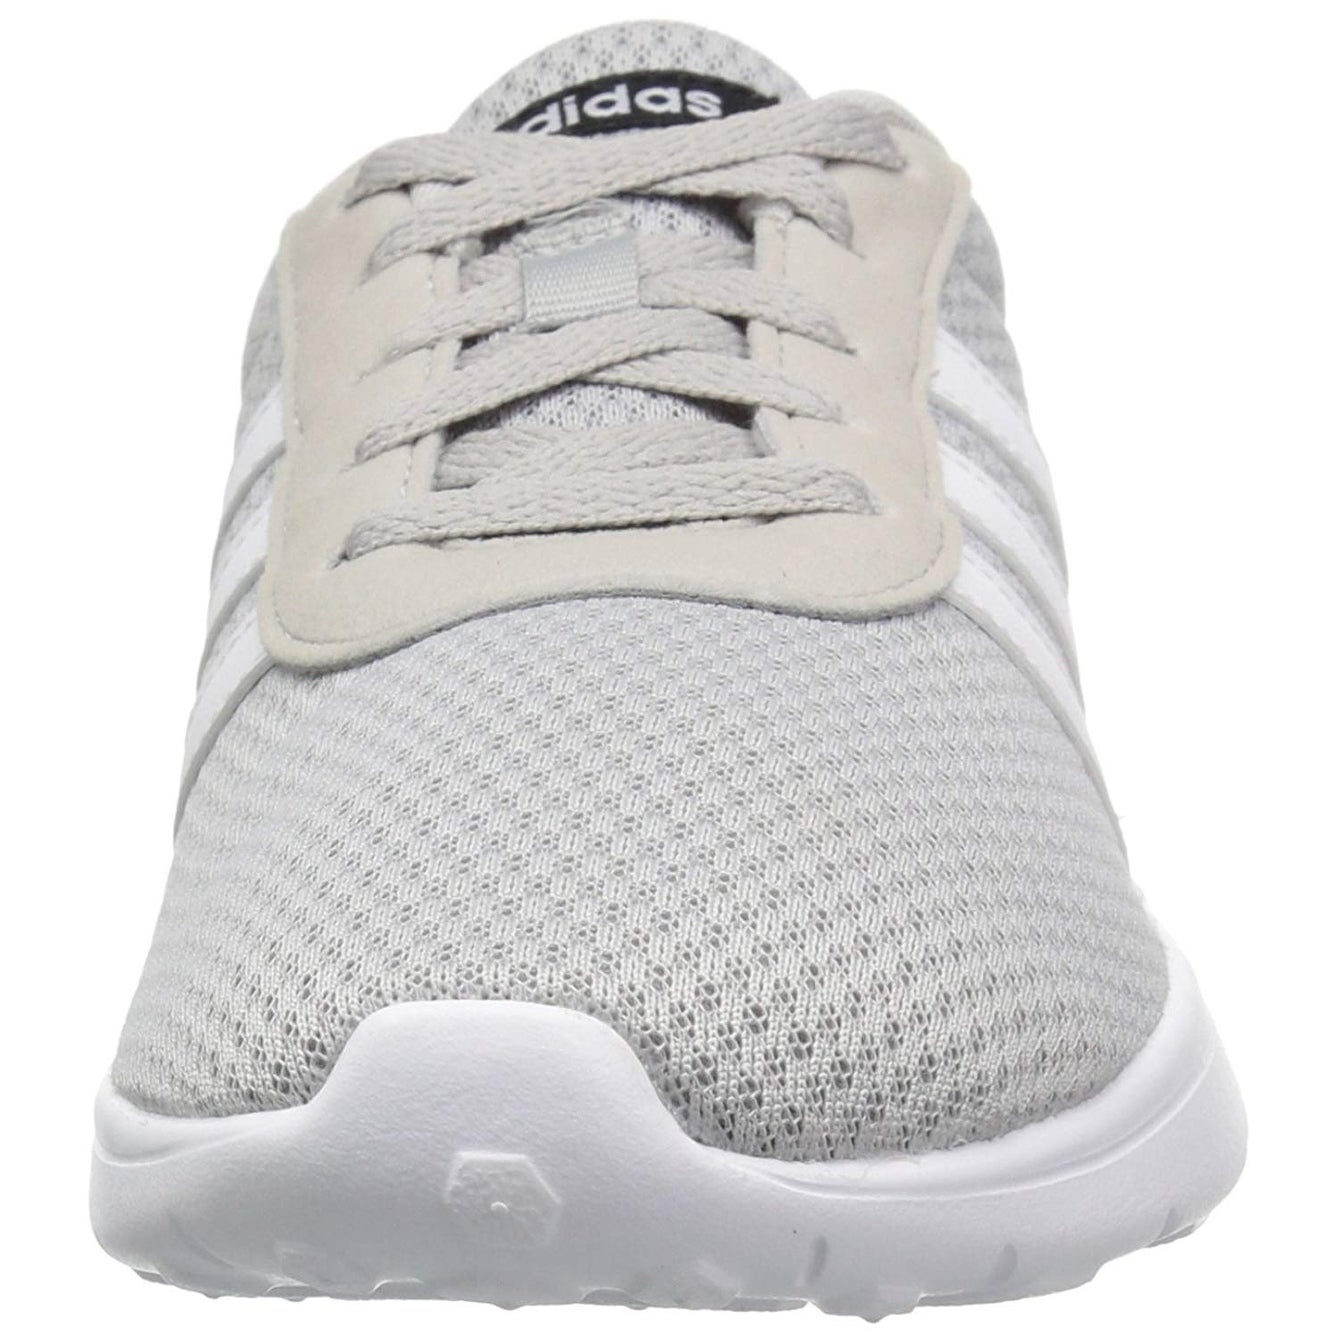 c1b0d782a600 Shop Adidas Mens Lite Racer Fabric Low Top Lace Up Running Sneaker - Free  Shipping On Orders Over  45 - Overstock - 22473528